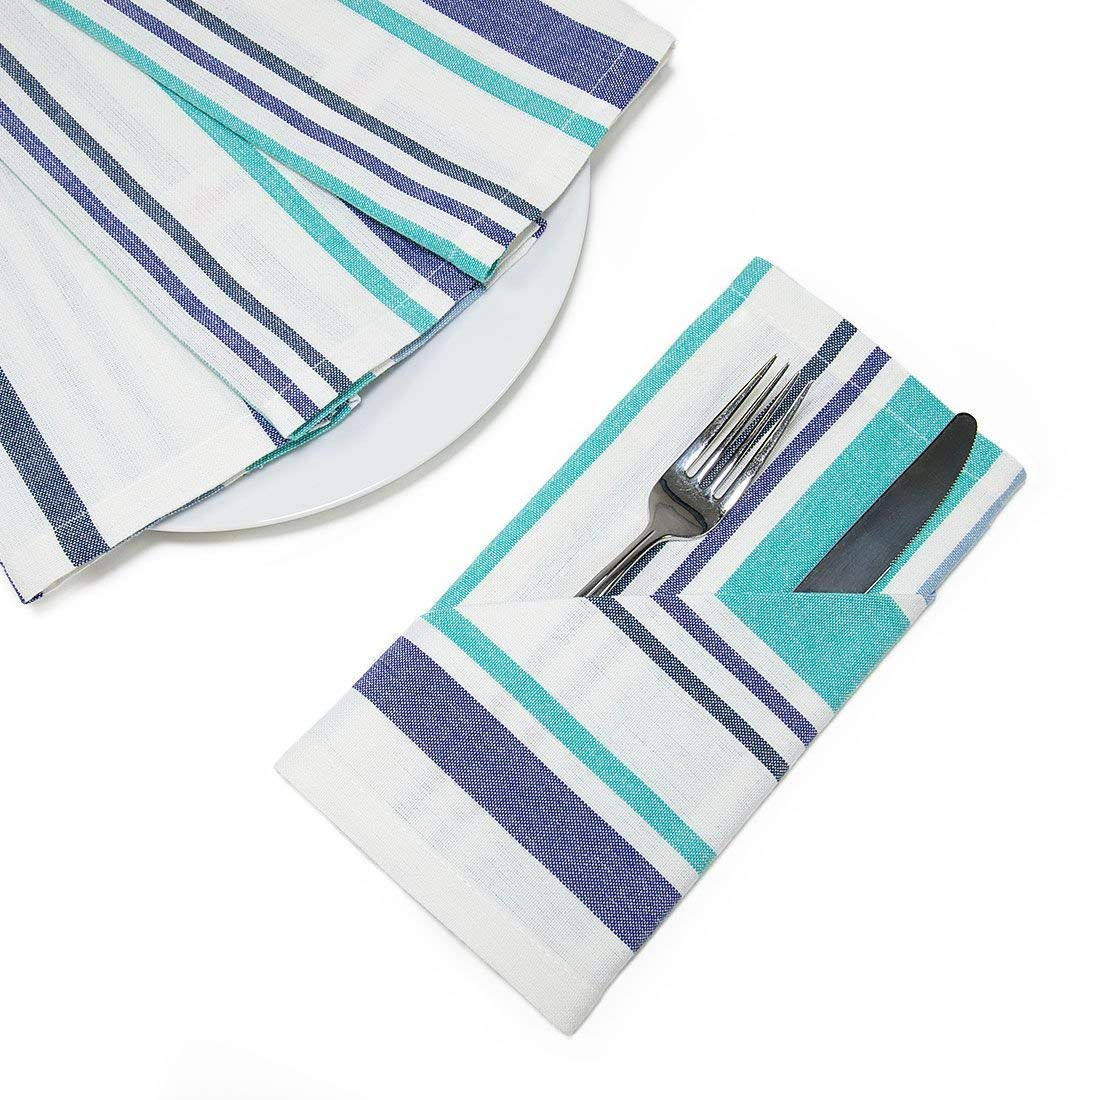 20 in. Blue Barcode-Striped Cotton Napkins 4/pack